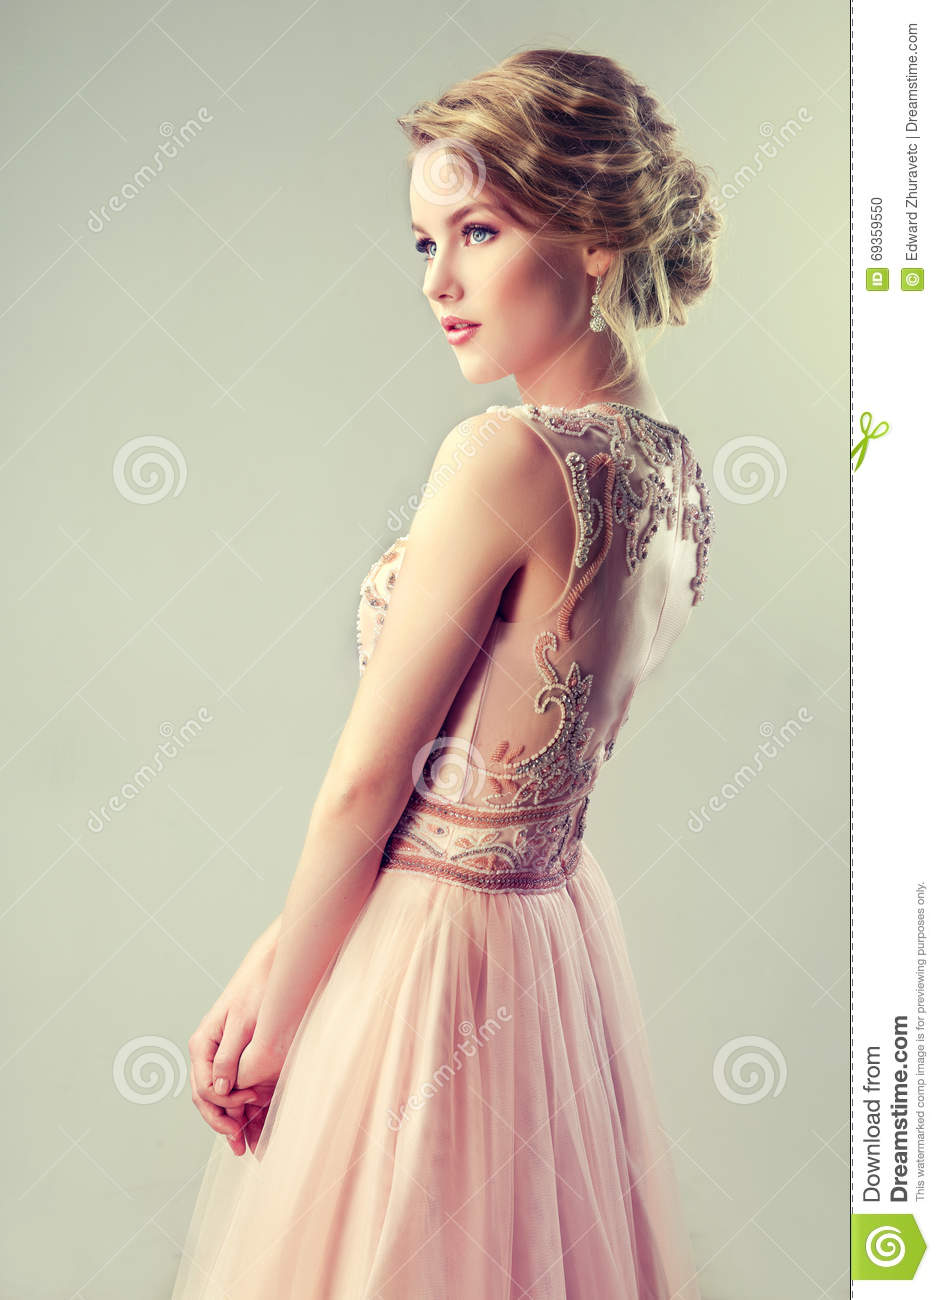 Beautiful Girl Light Brown Hair With An Elegant Hairstyle Stock